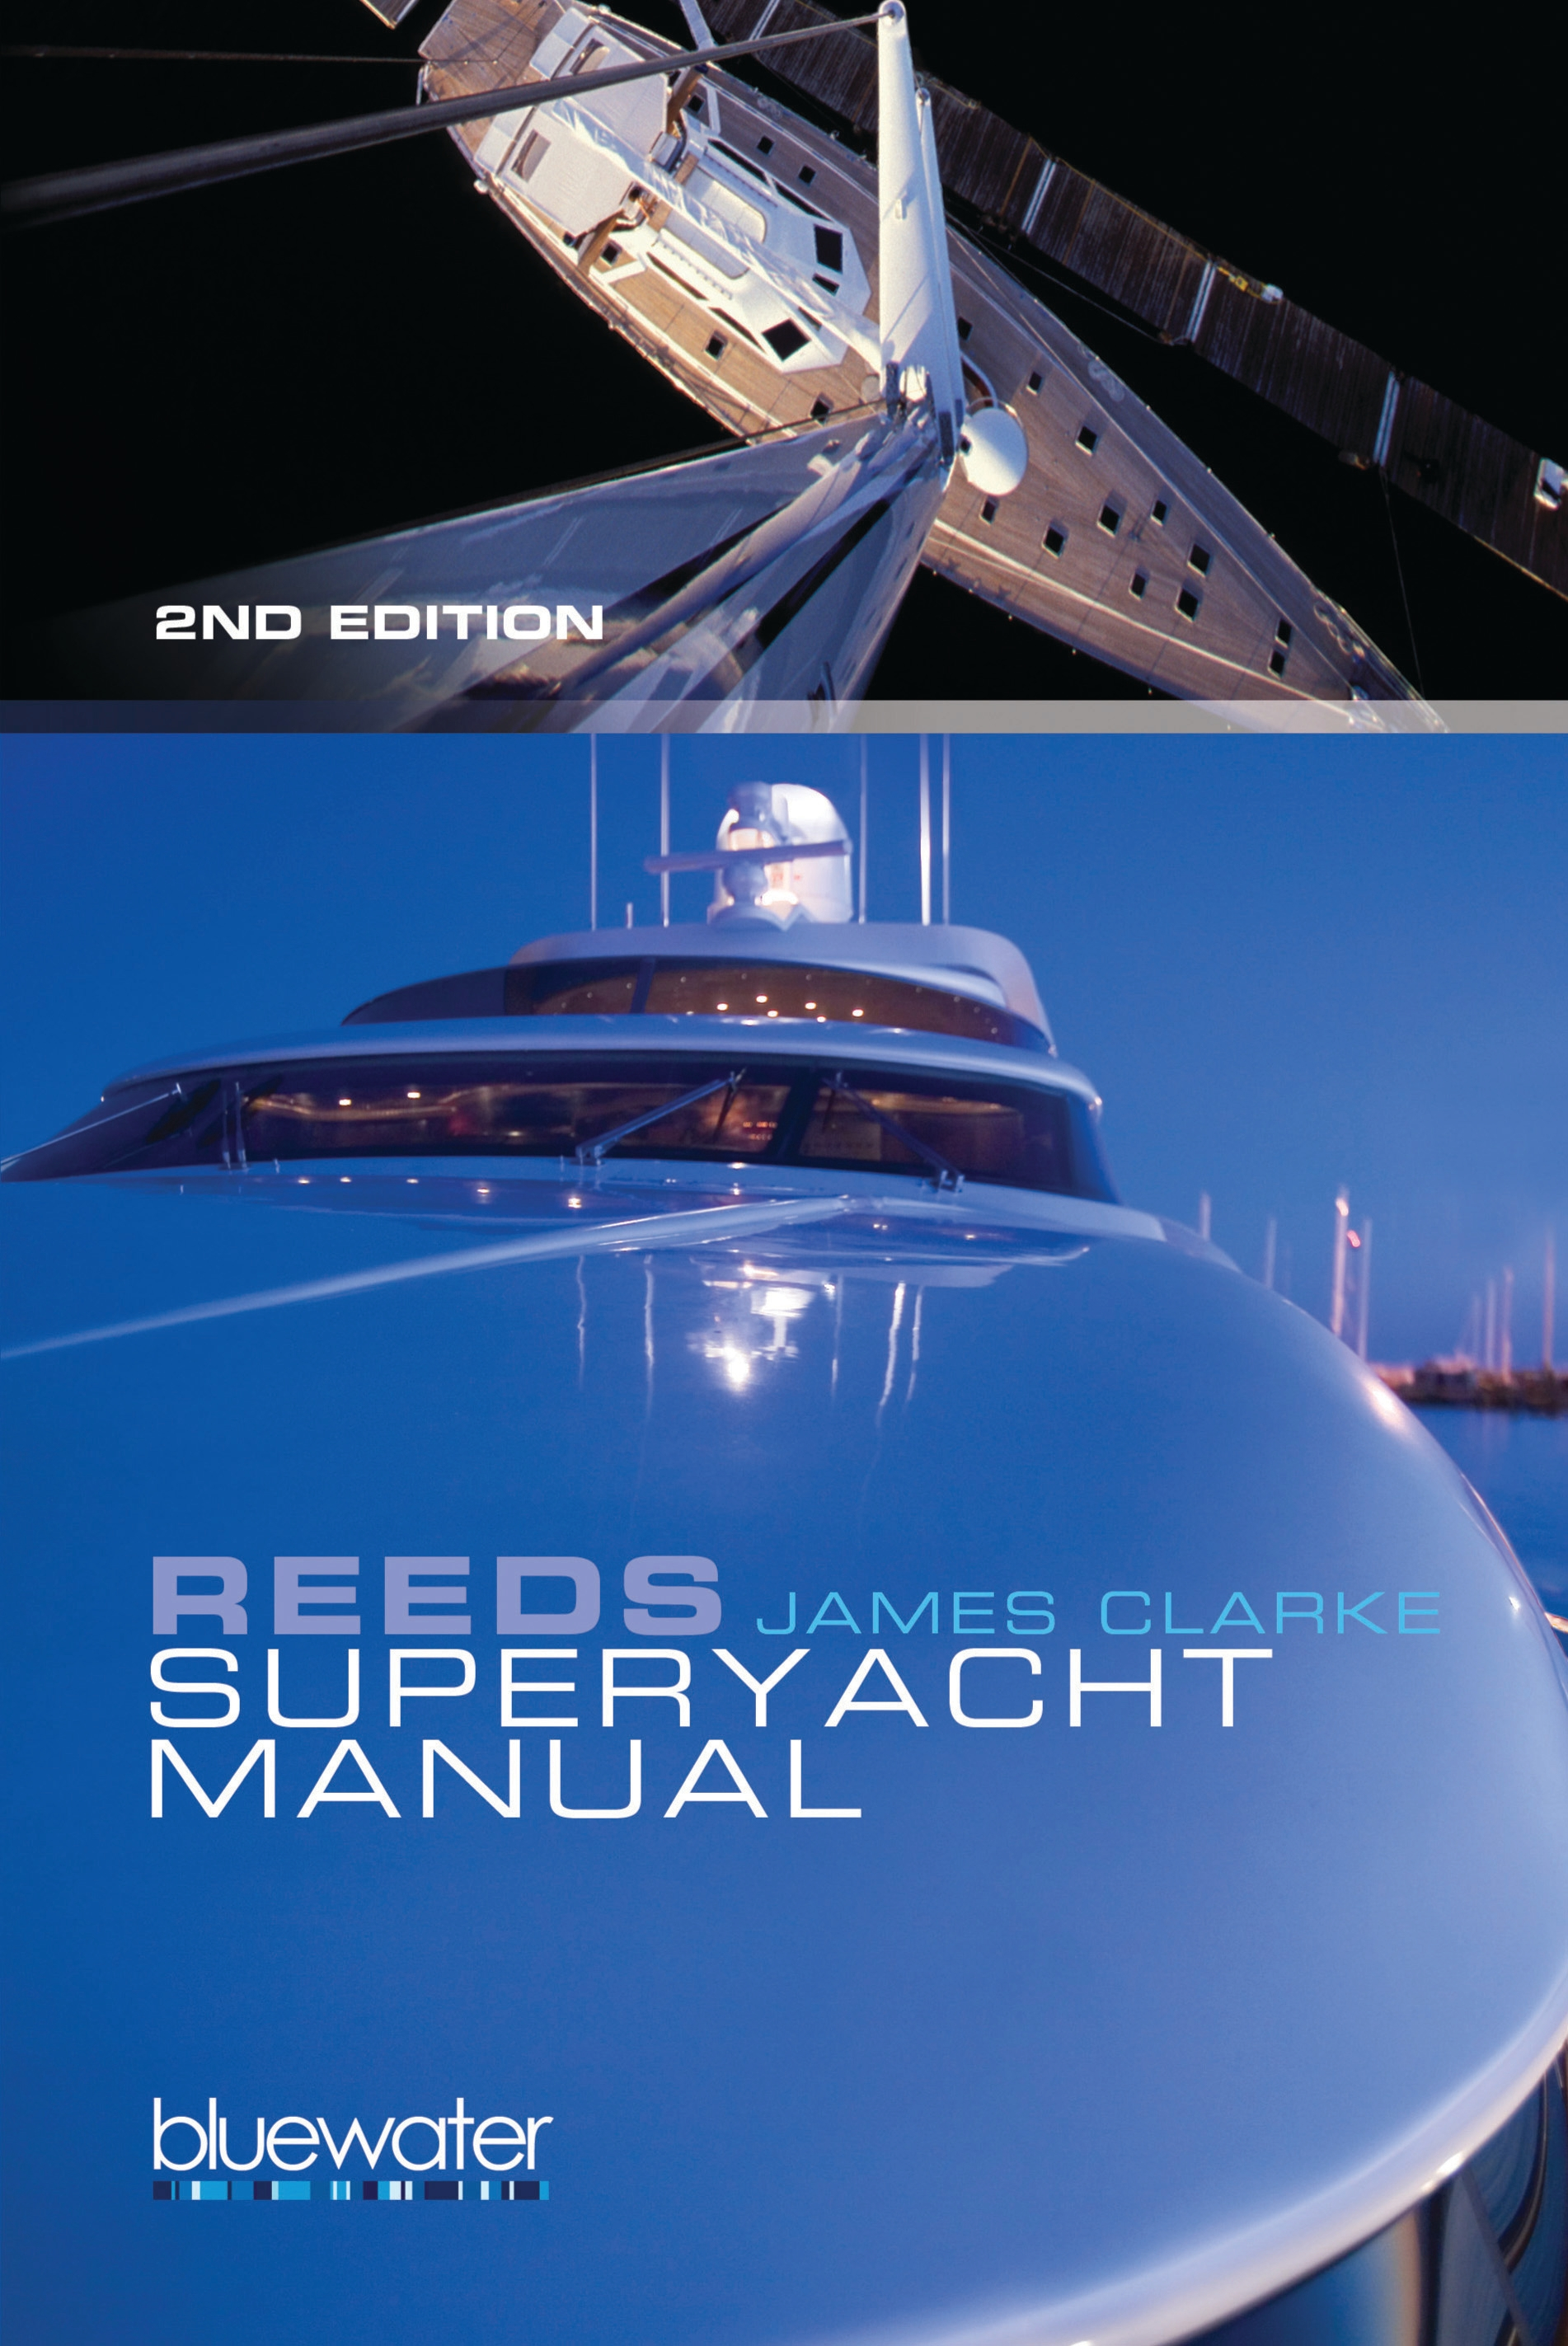 Reeds Superyacht Manual Published in Association with Bluewater Training